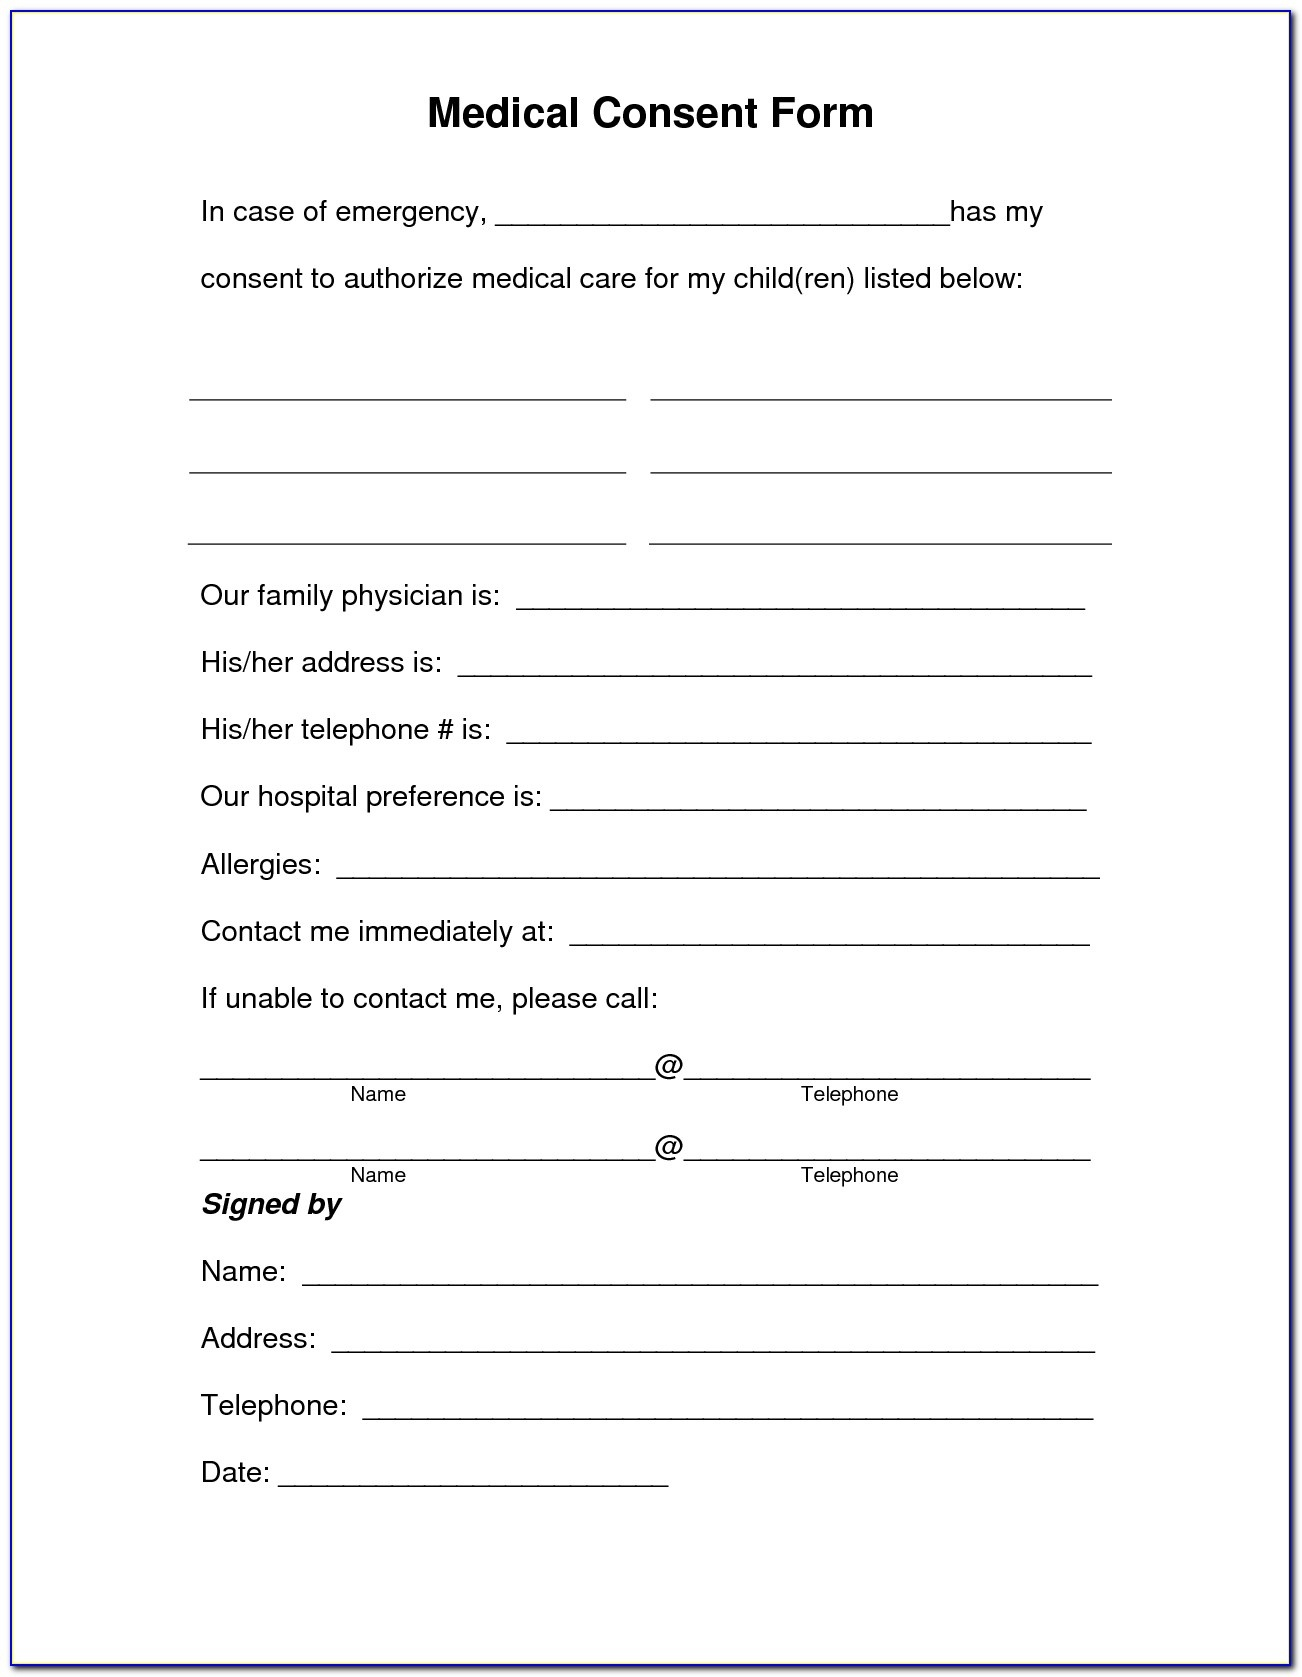 Free Child Medical Consent Form Template - Form : Resume Examples - Free Printable Medical Consent Form